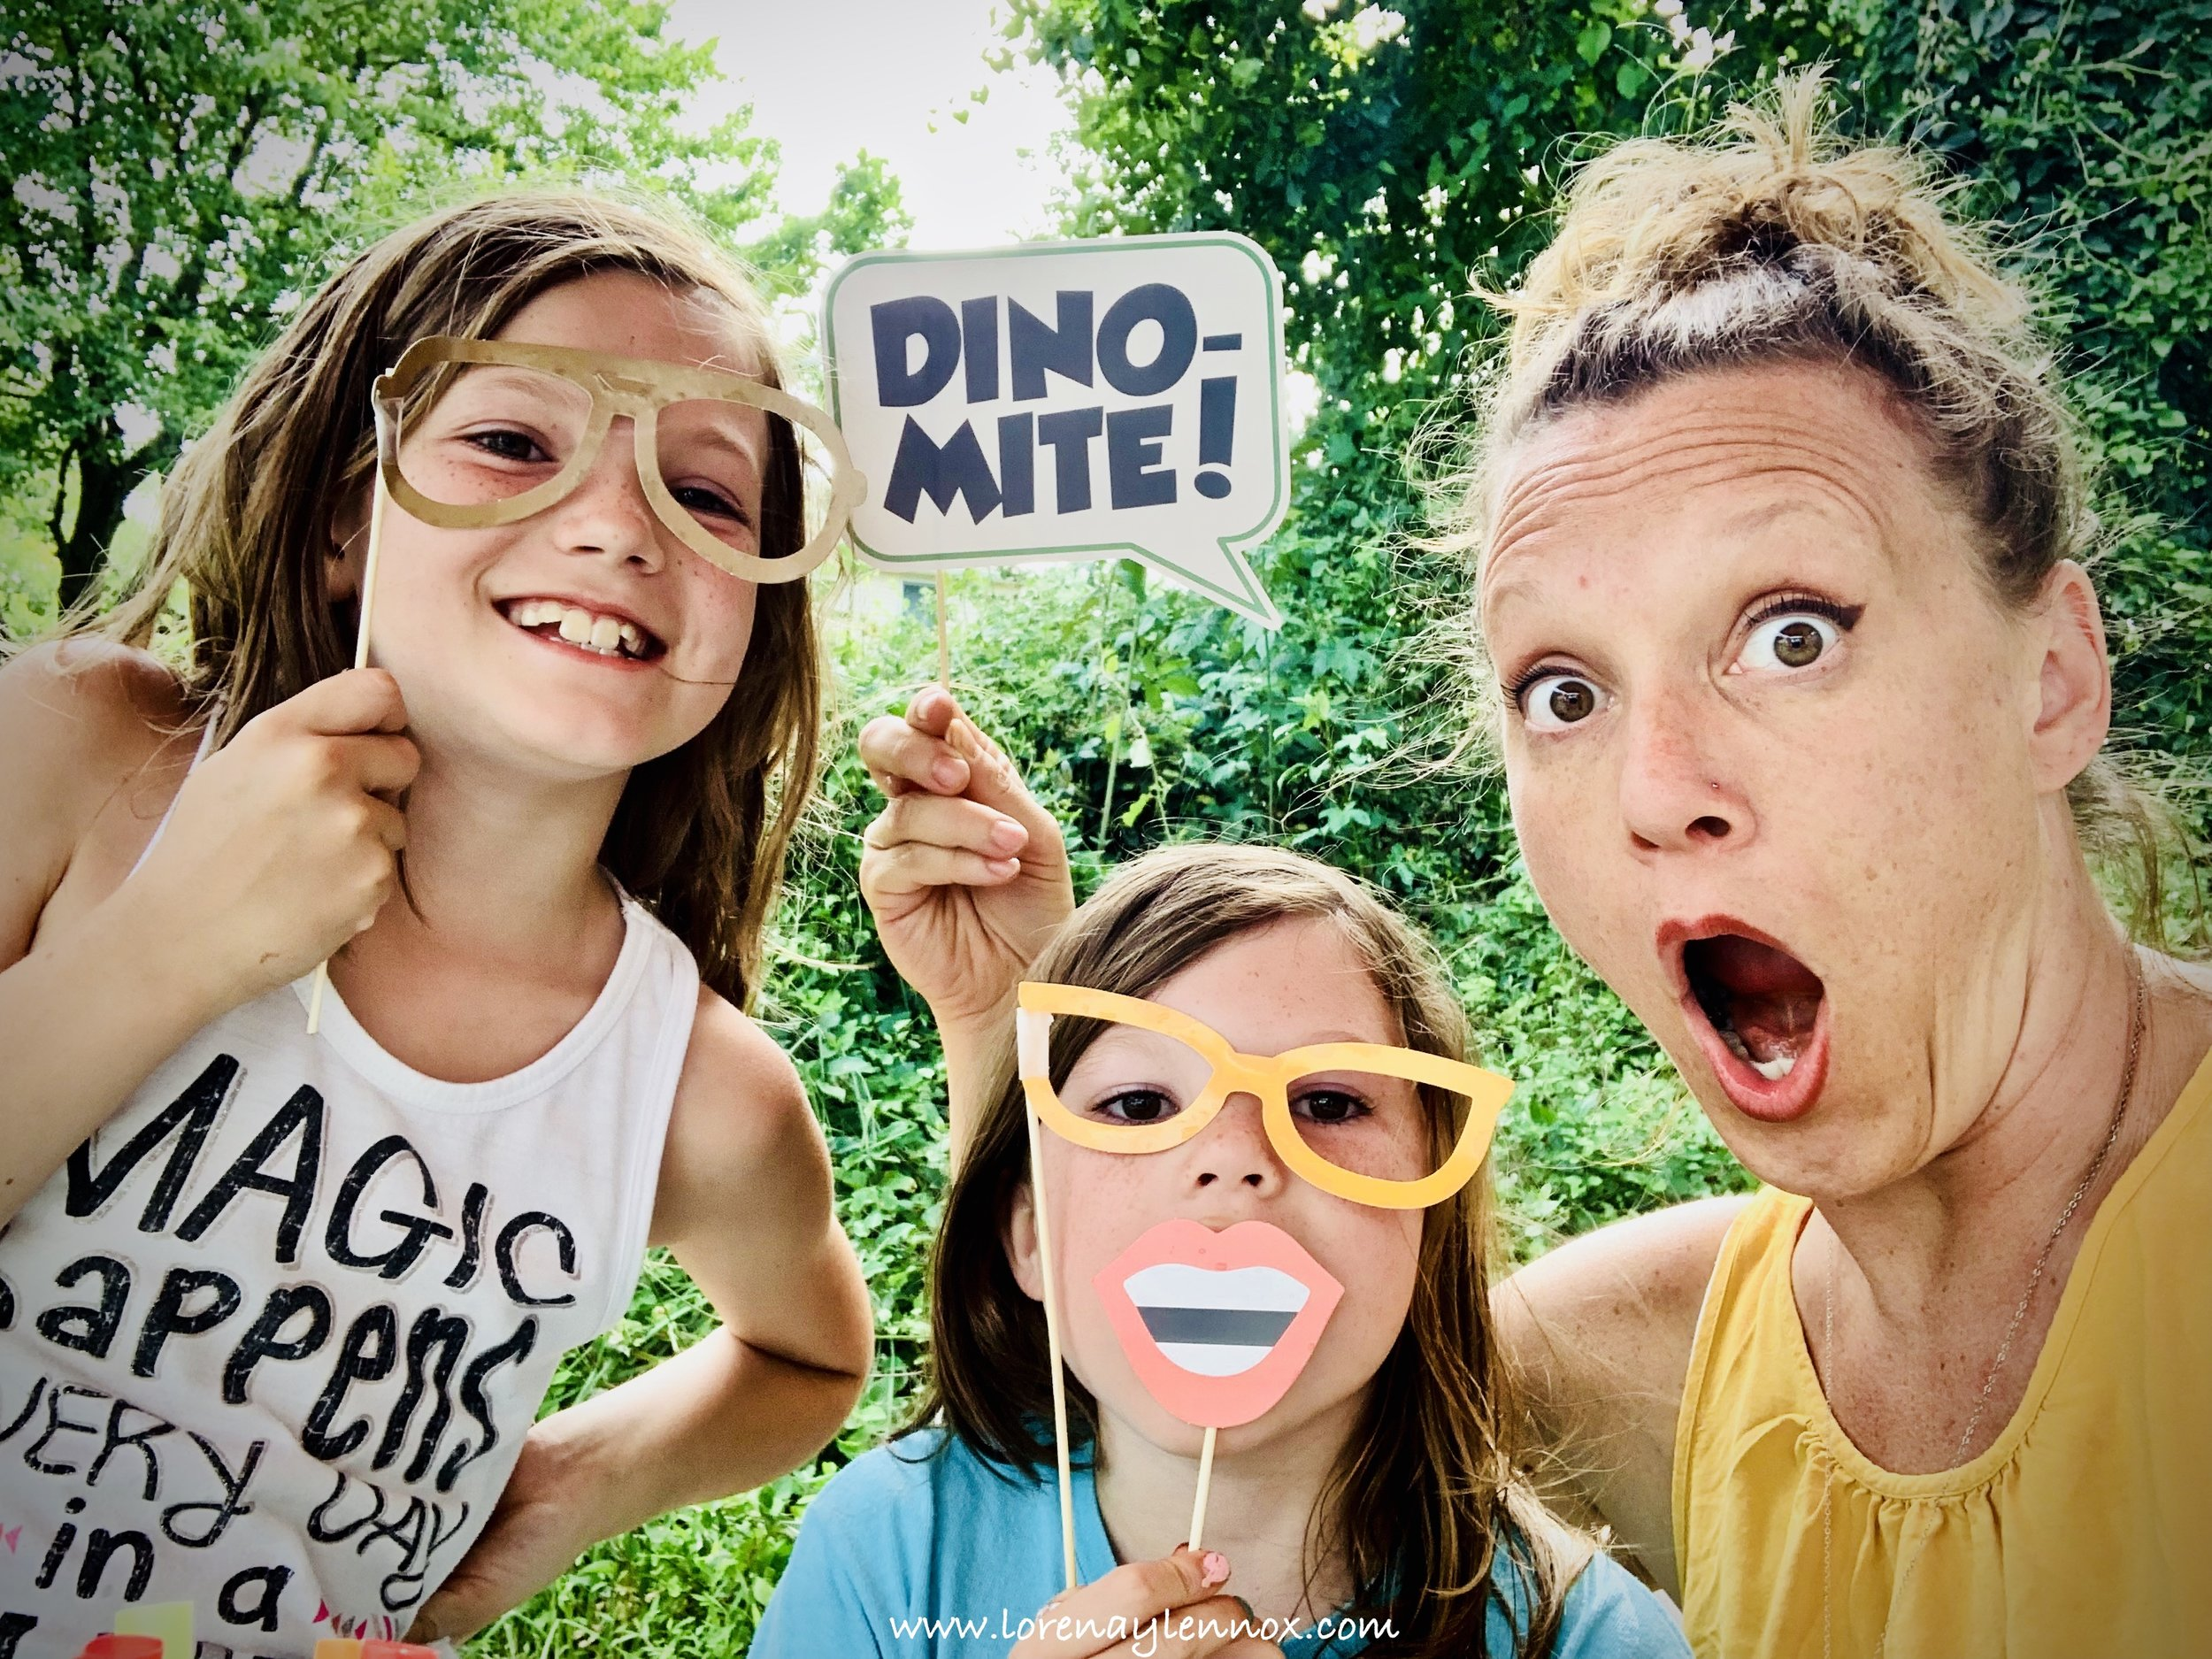 Dinosaur Photo Booth Props. DIY Ideas for a Dinosaur-Themed Birthday Party. #Dinosaurparty #birthdayideas